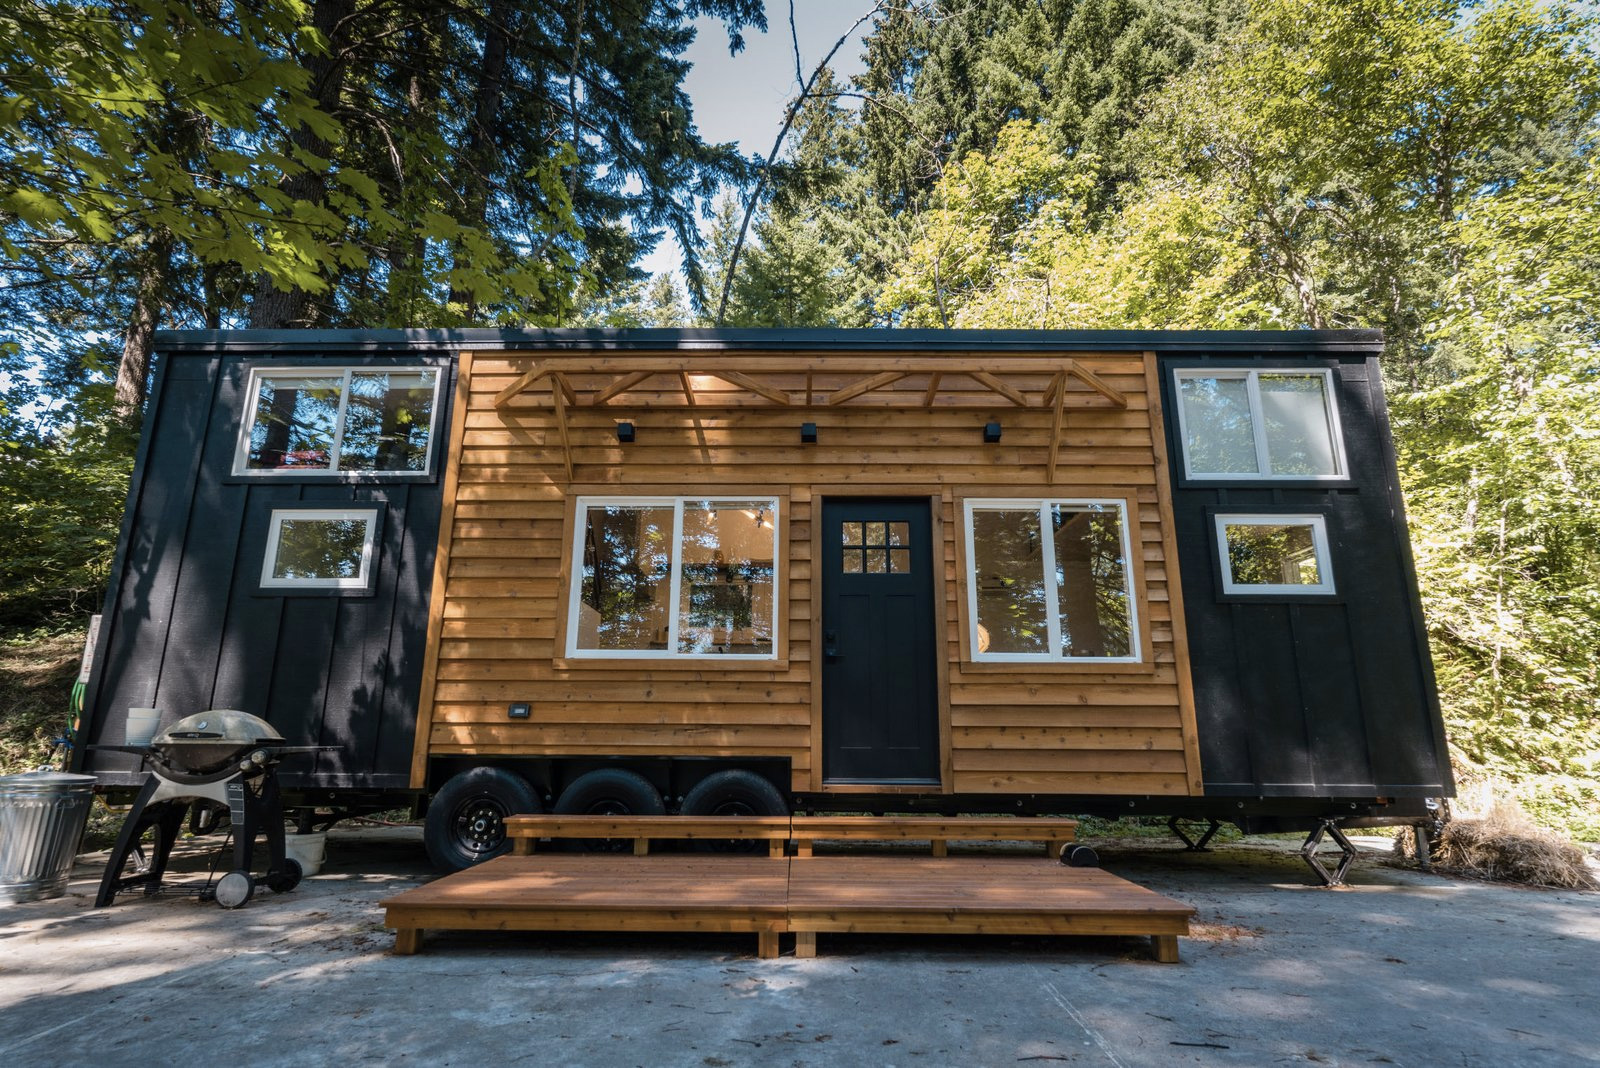 A 'Scandinese' tiny home trailer is for sale in Portland